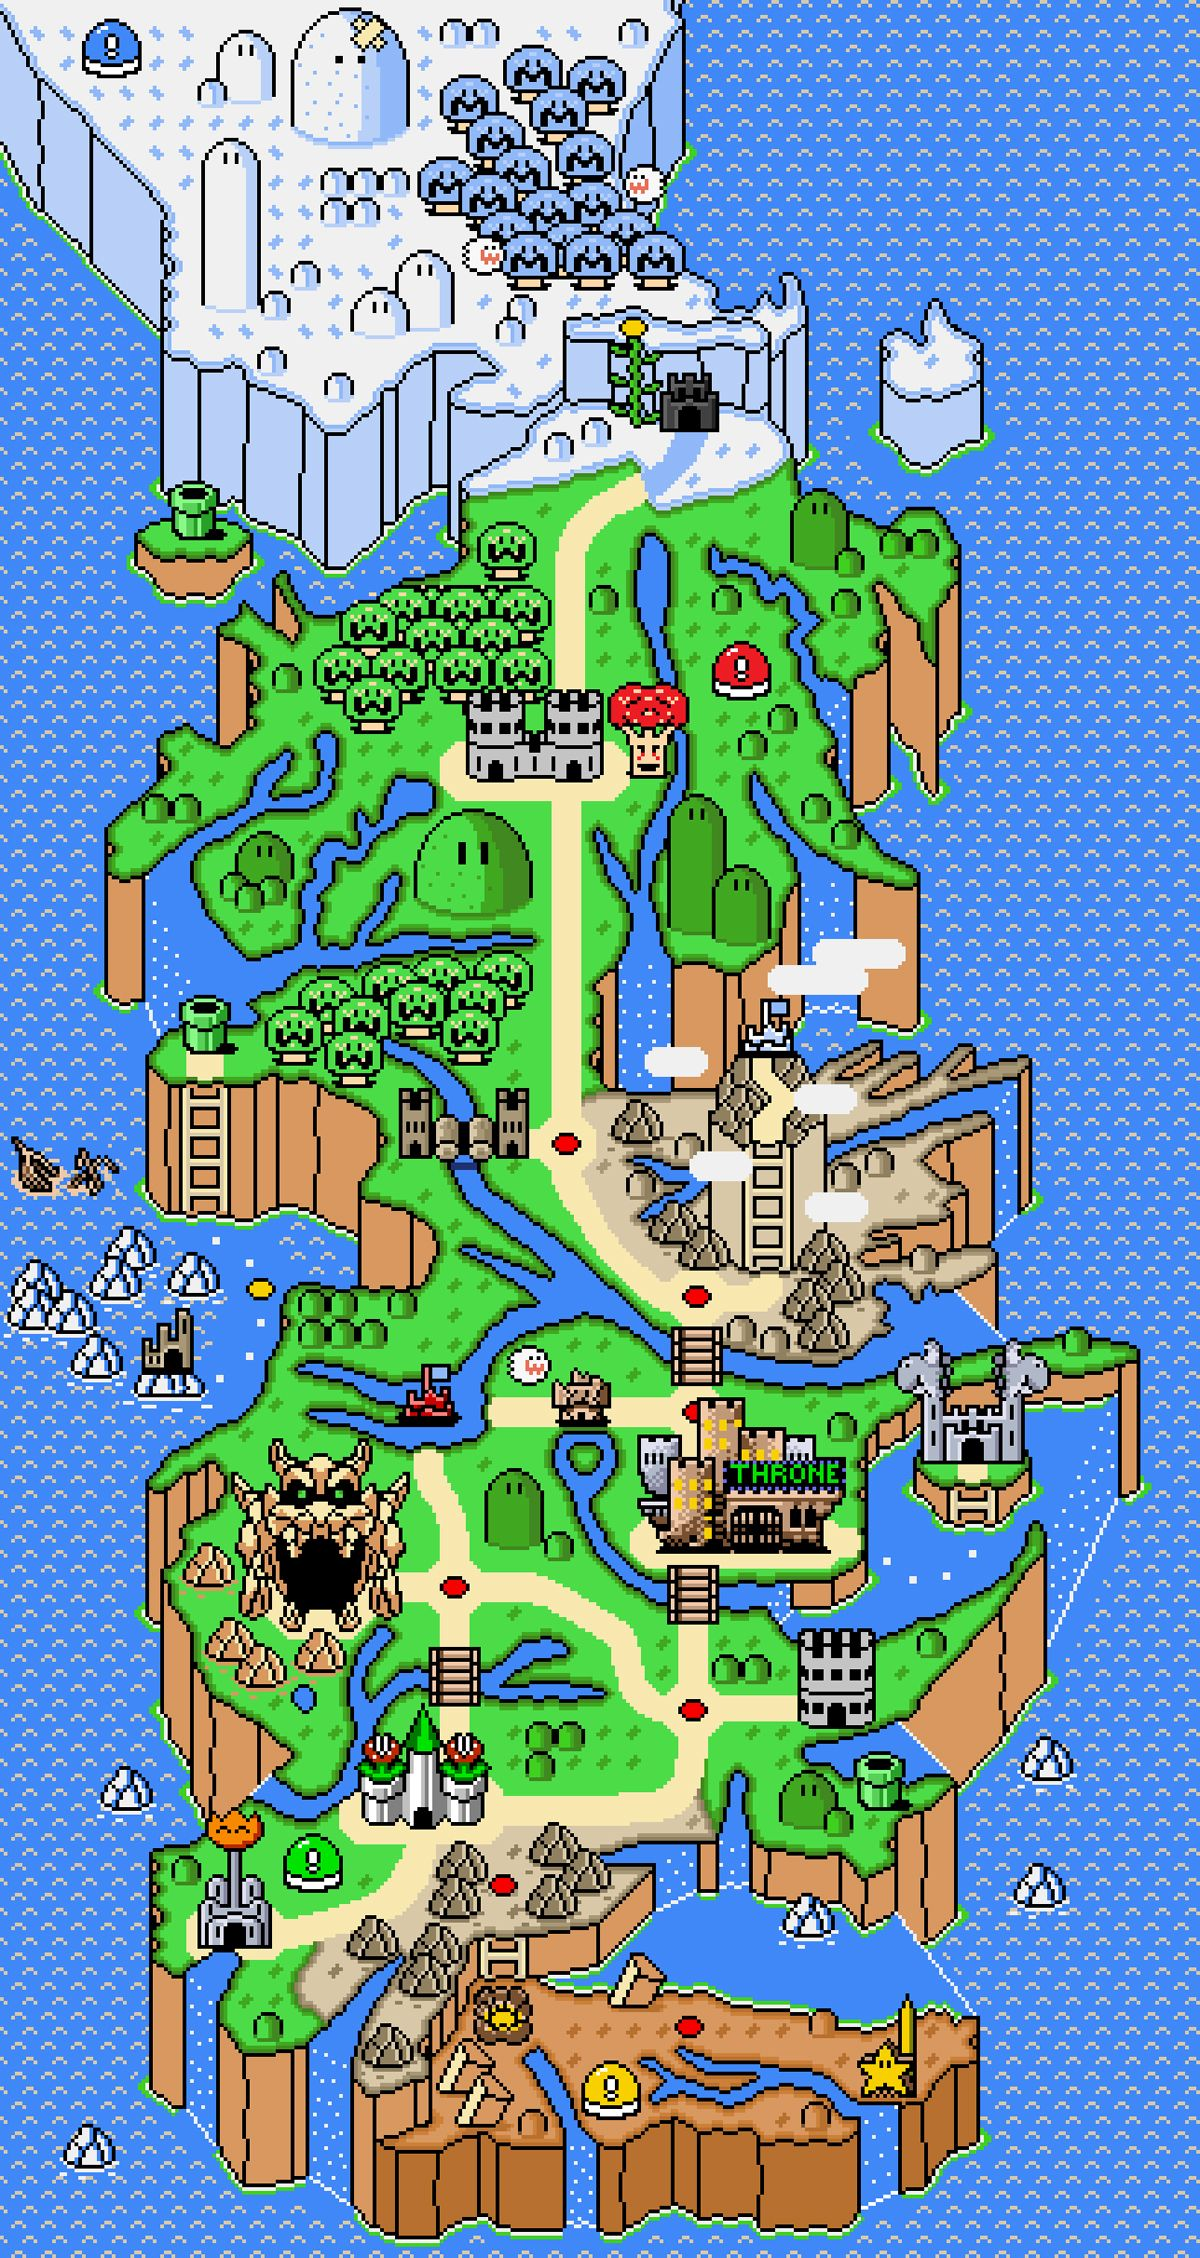 Super mario game of thrones creative mashup illustration super mario game of thrones creative mashup illustration gameofthrones got supermario nintendo hbo gumiabroncs Image collections